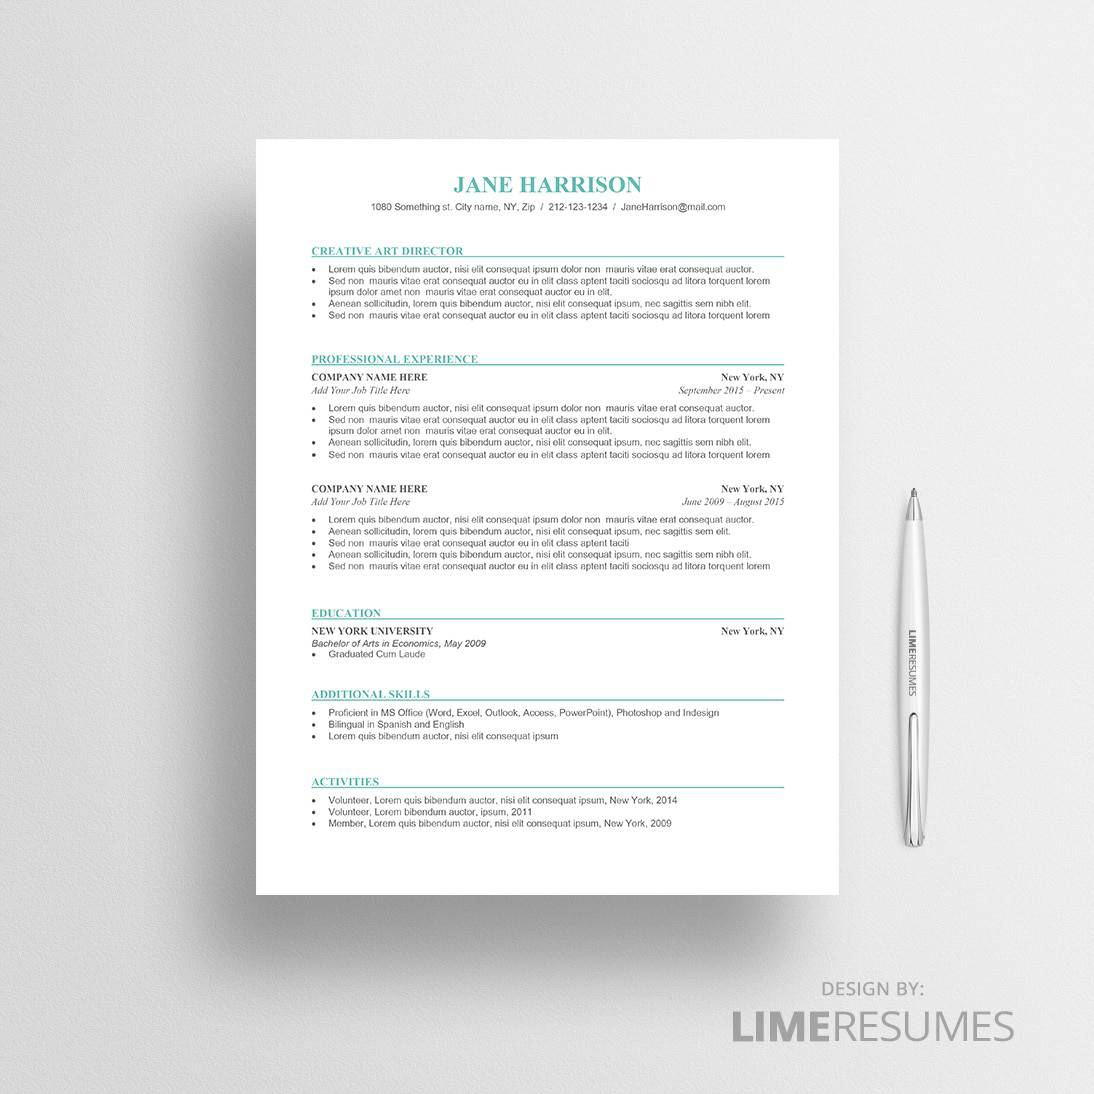 ats friendly resume template ats resume template. Black Bedroom Furniture Sets. Home Design Ideas